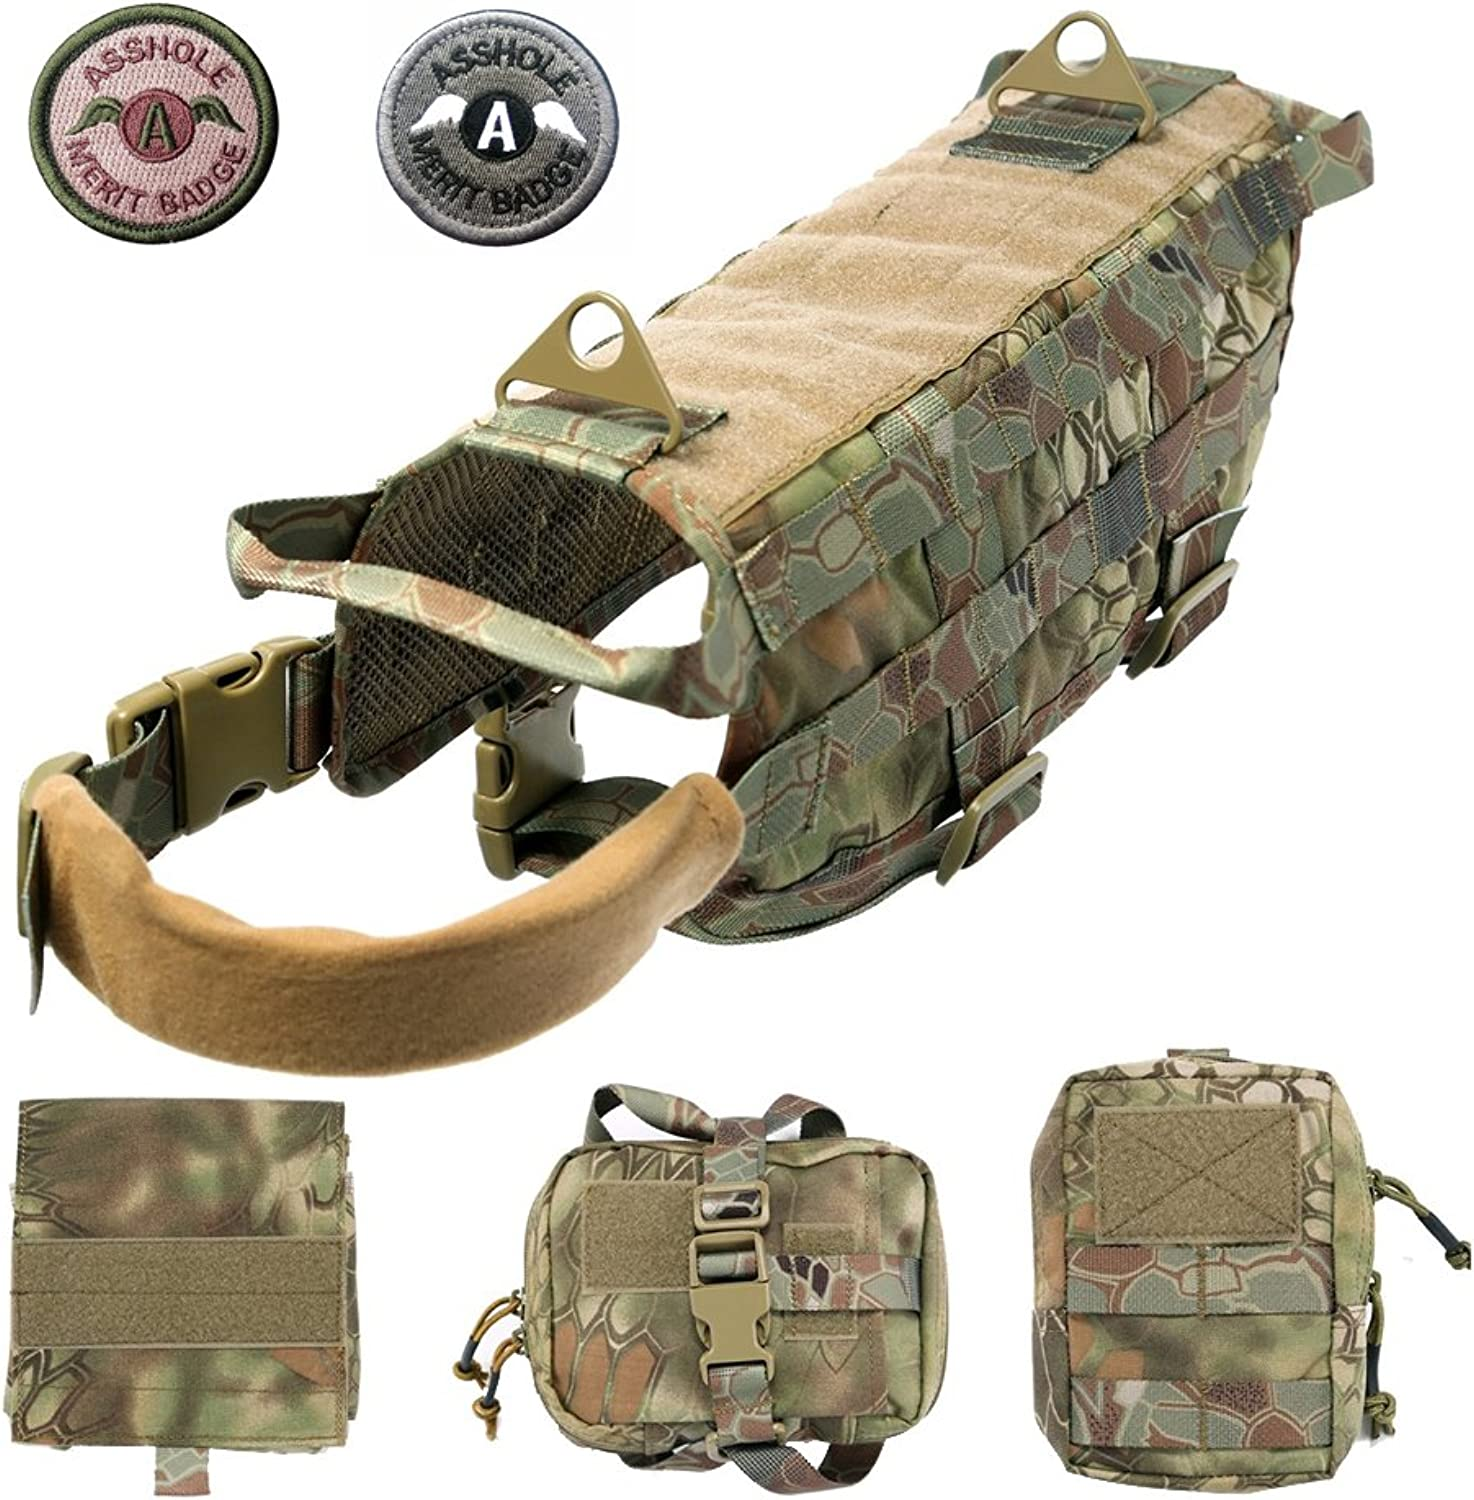 Lifeunion Tactical Dog Molle Harness Nylon Training Patrol Vest Backpack Packs with 3 Detachable Pouches (M, MAD 1)